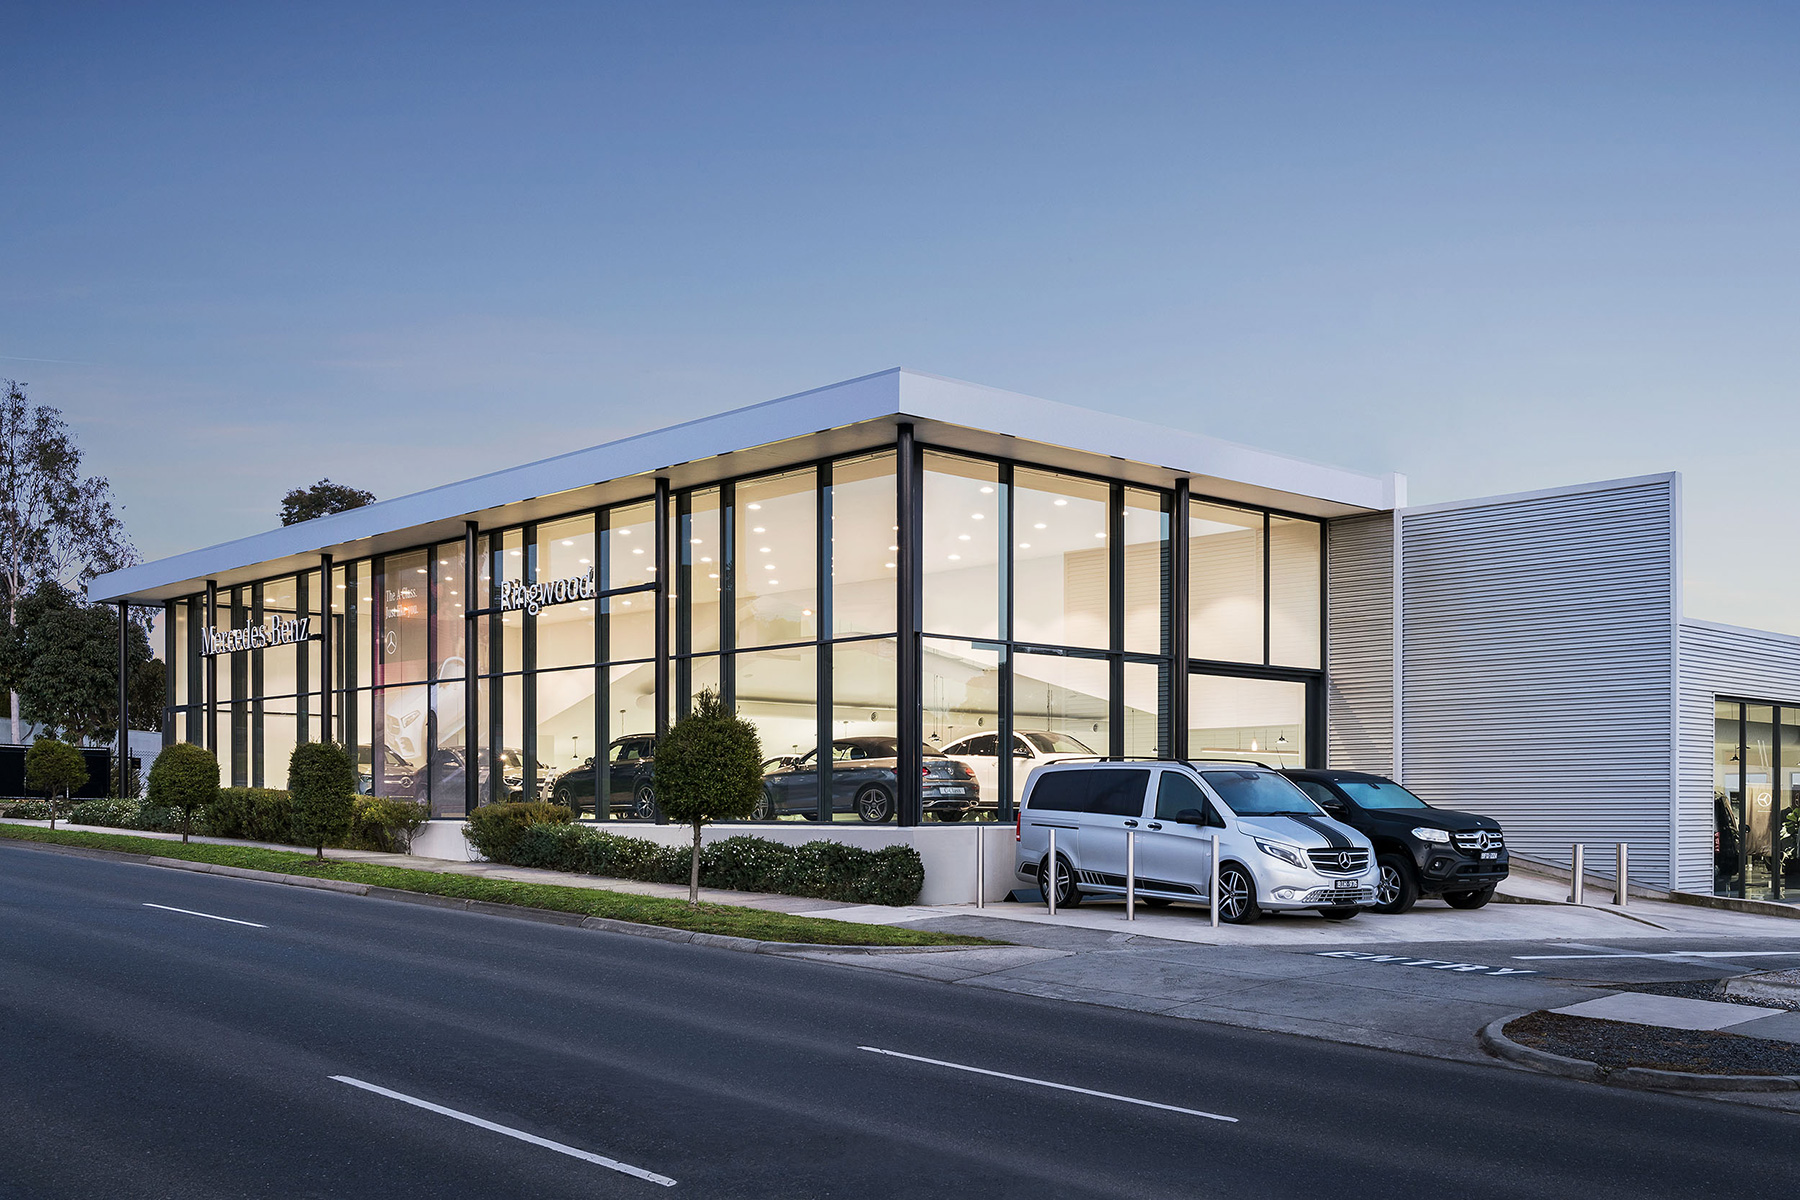 c. kairouz architects commercial architecture design for car dealership exterior building image